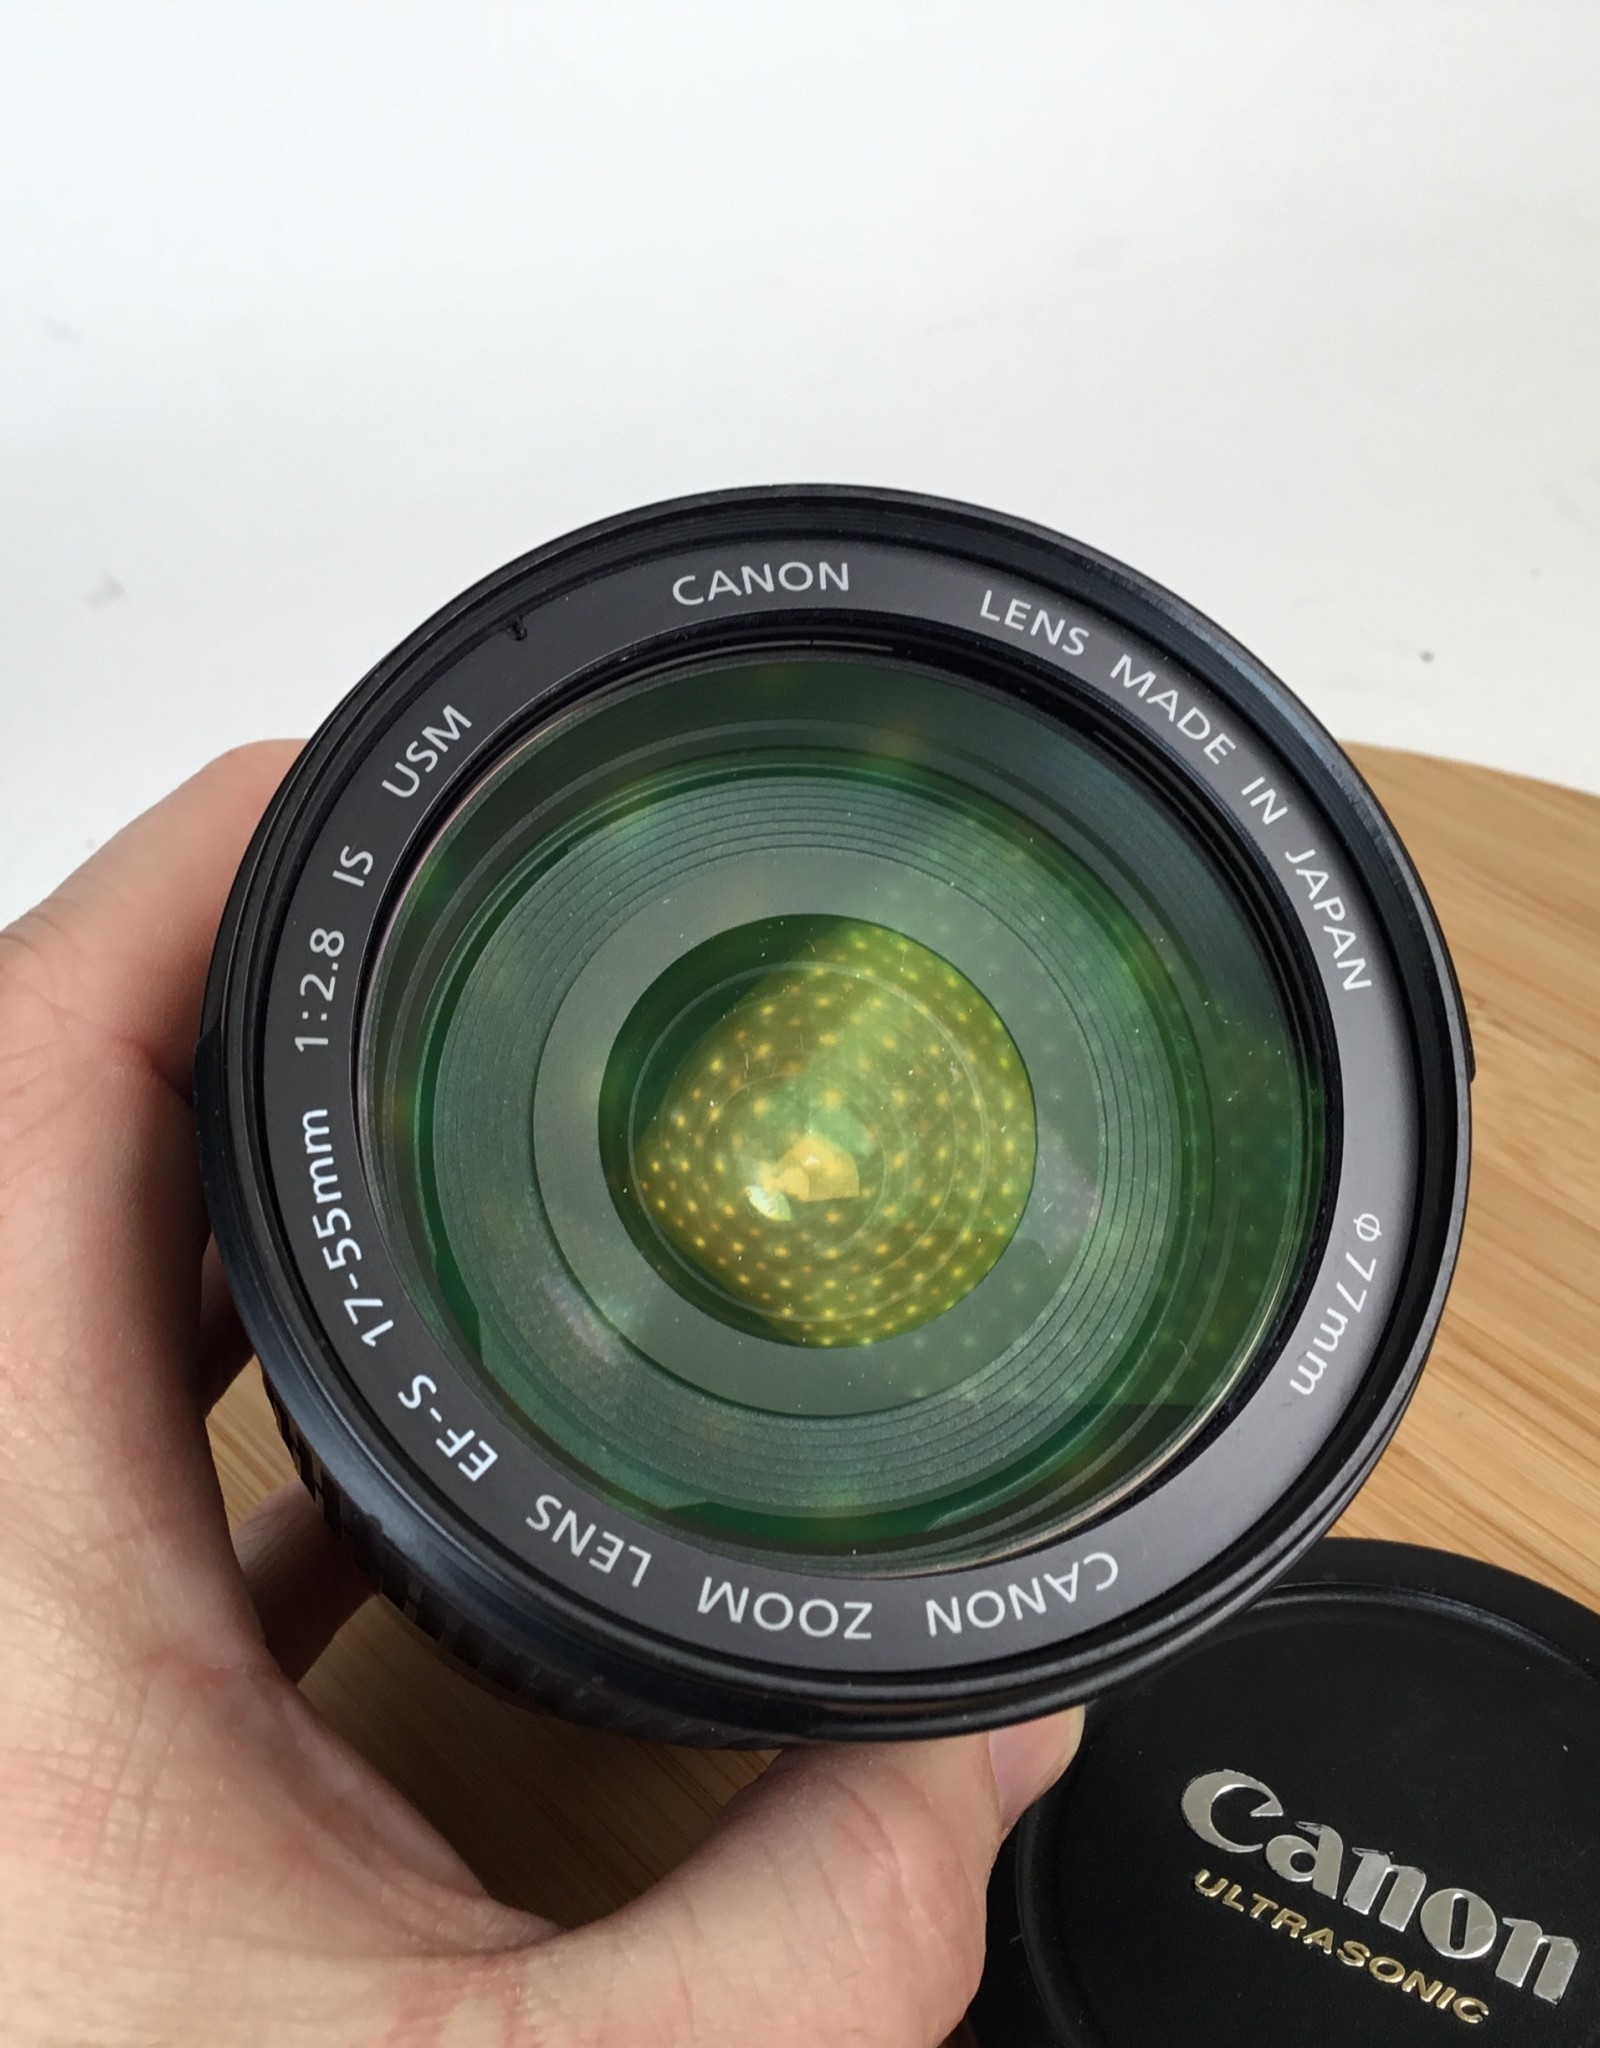 CANON Canon EF-S 17-55mm f2.8 Lens As Is Used